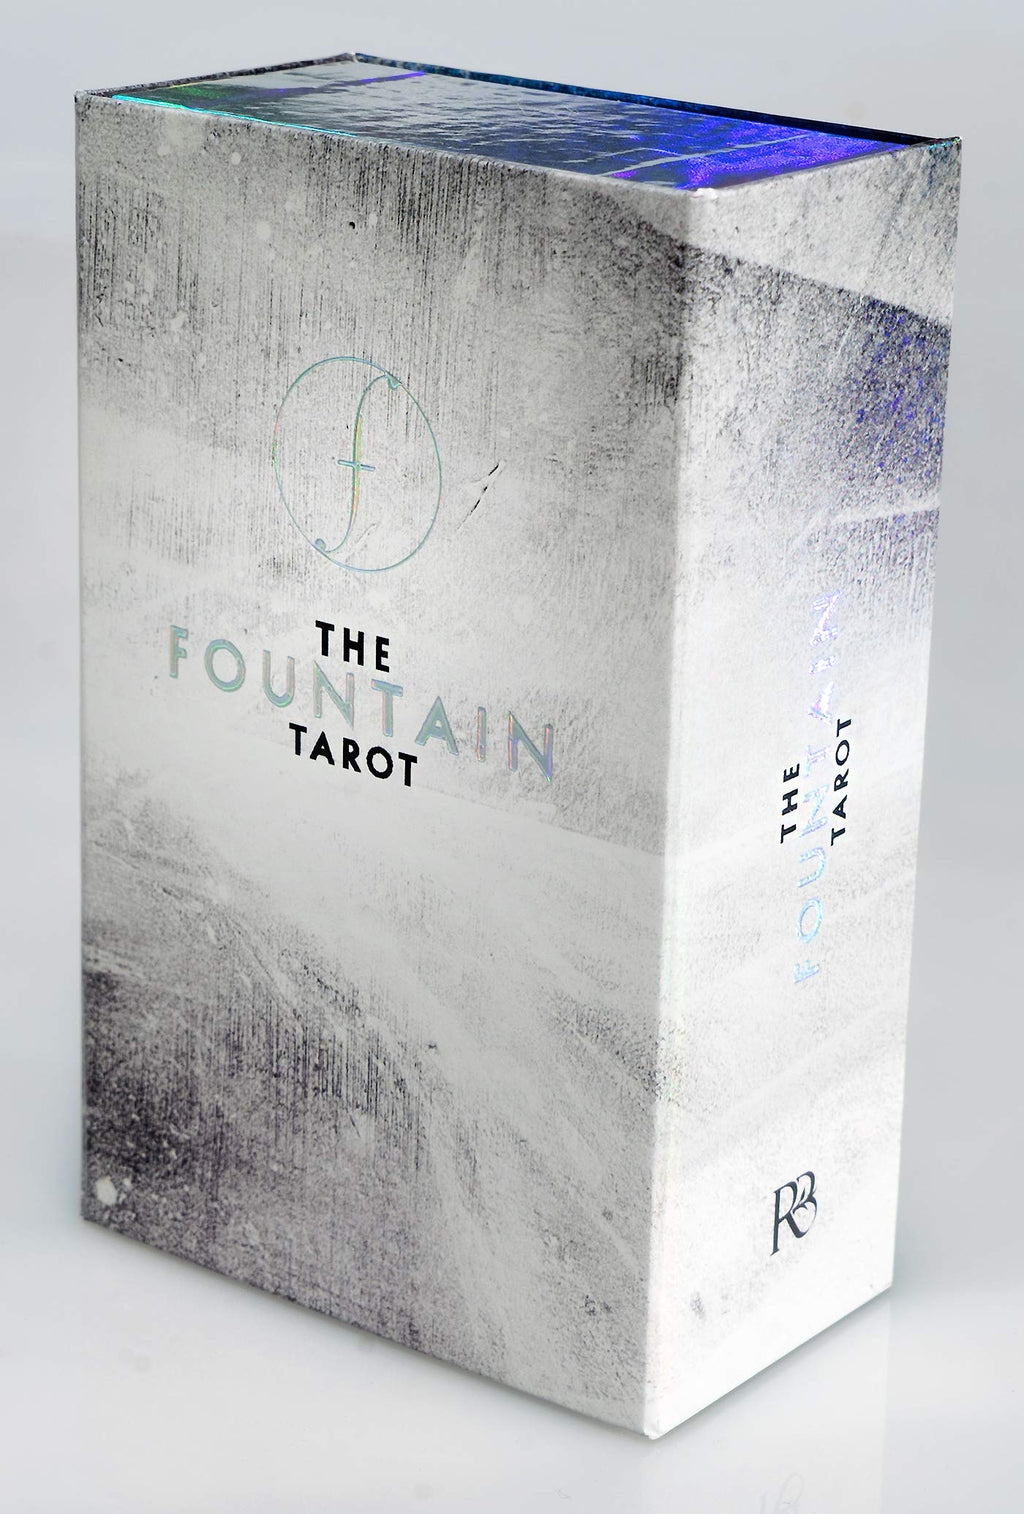 The Fountain Tarot by Jason Gruhl